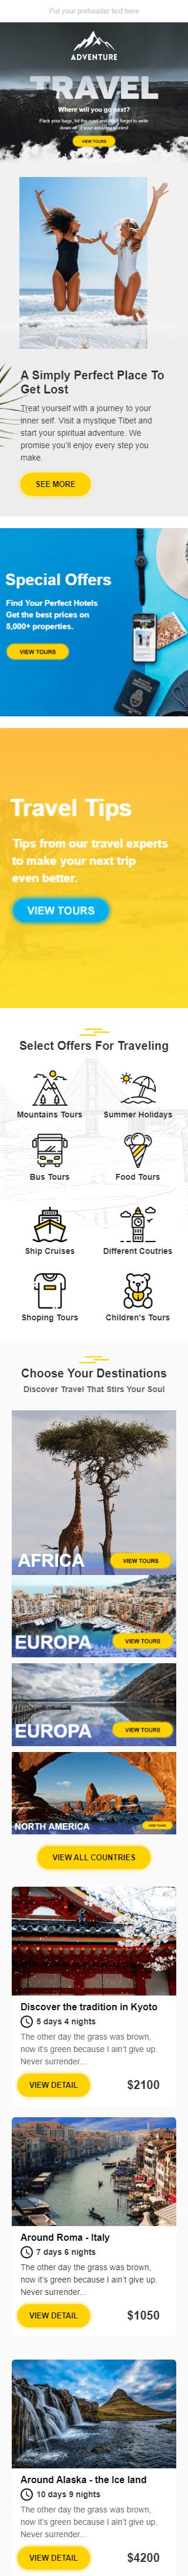 Promo Email Template «Travel Fun» for Tourism industry mobile view